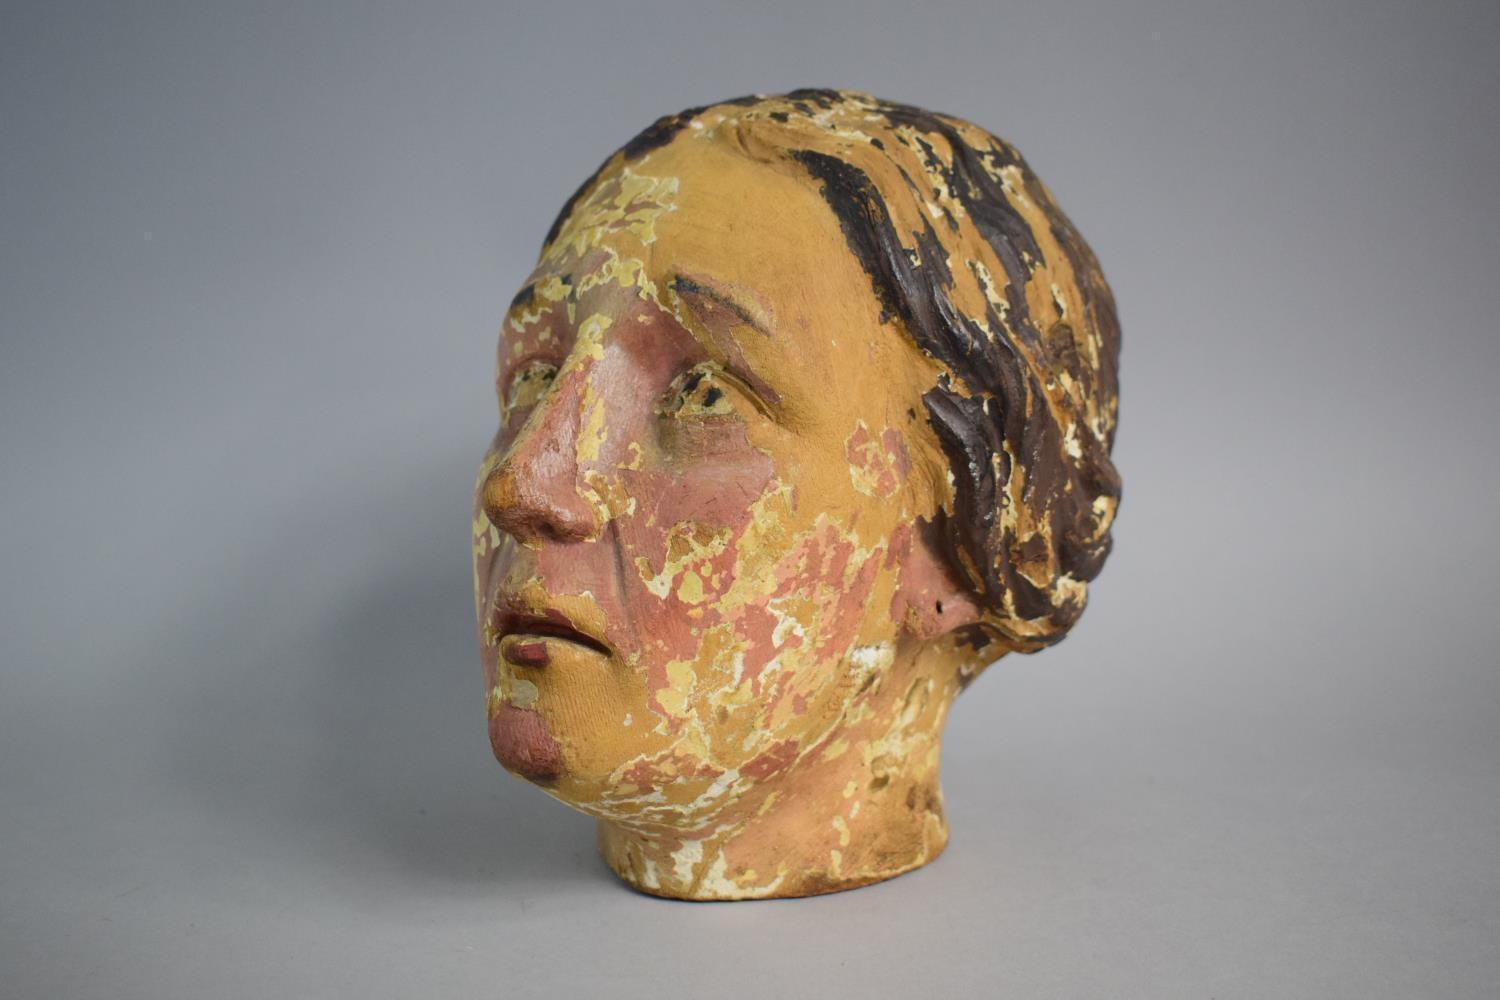 Lot 39 - A 19th Century Carved Wooden Bust of a Maiden with Traces of Original Paint. Probably Italian. 21cms